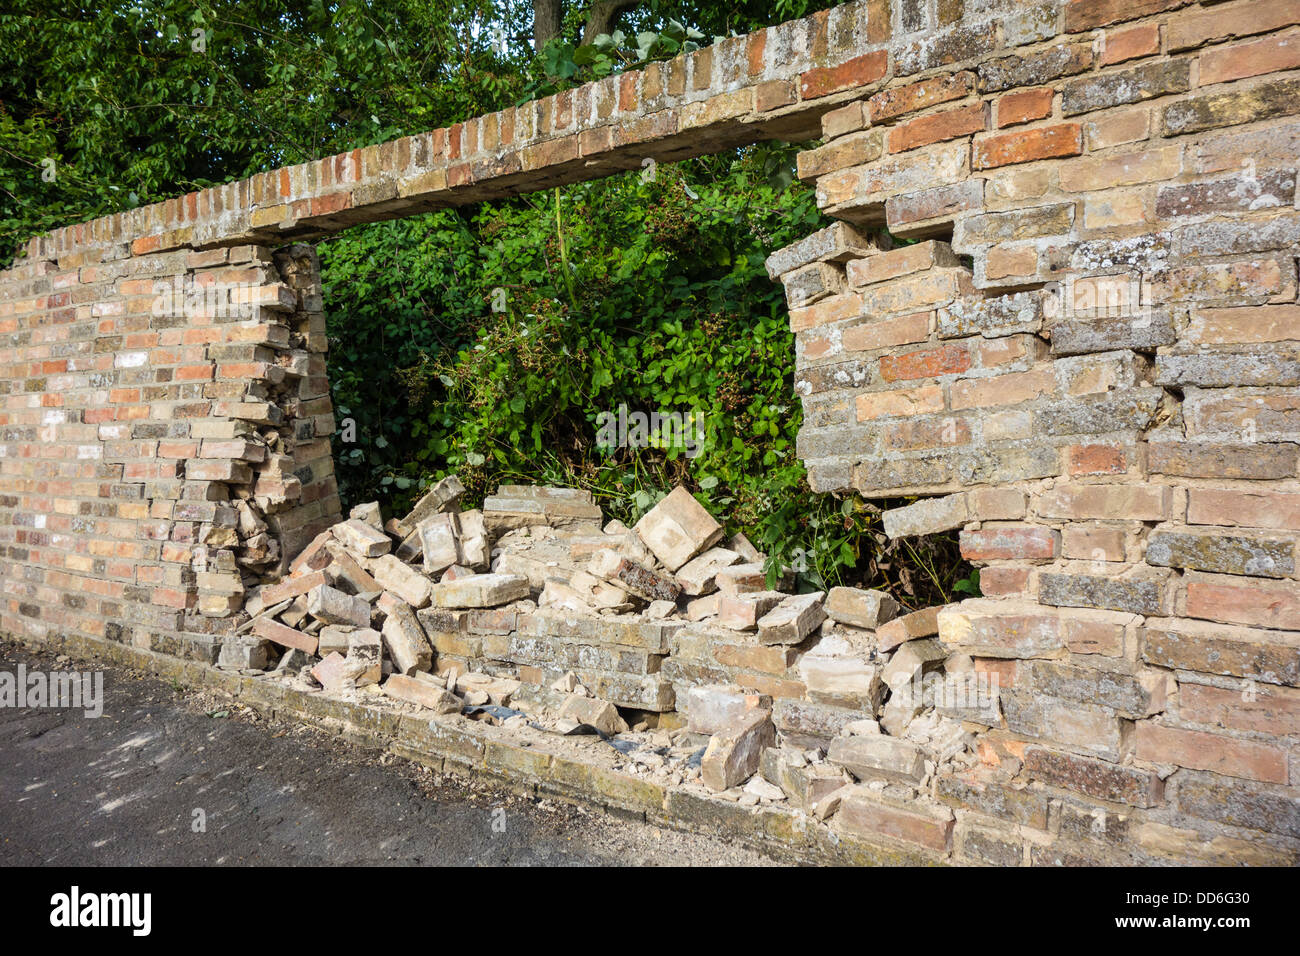 Brick Wall Hole Stock Photos & Brick Wall Hole Stock ...